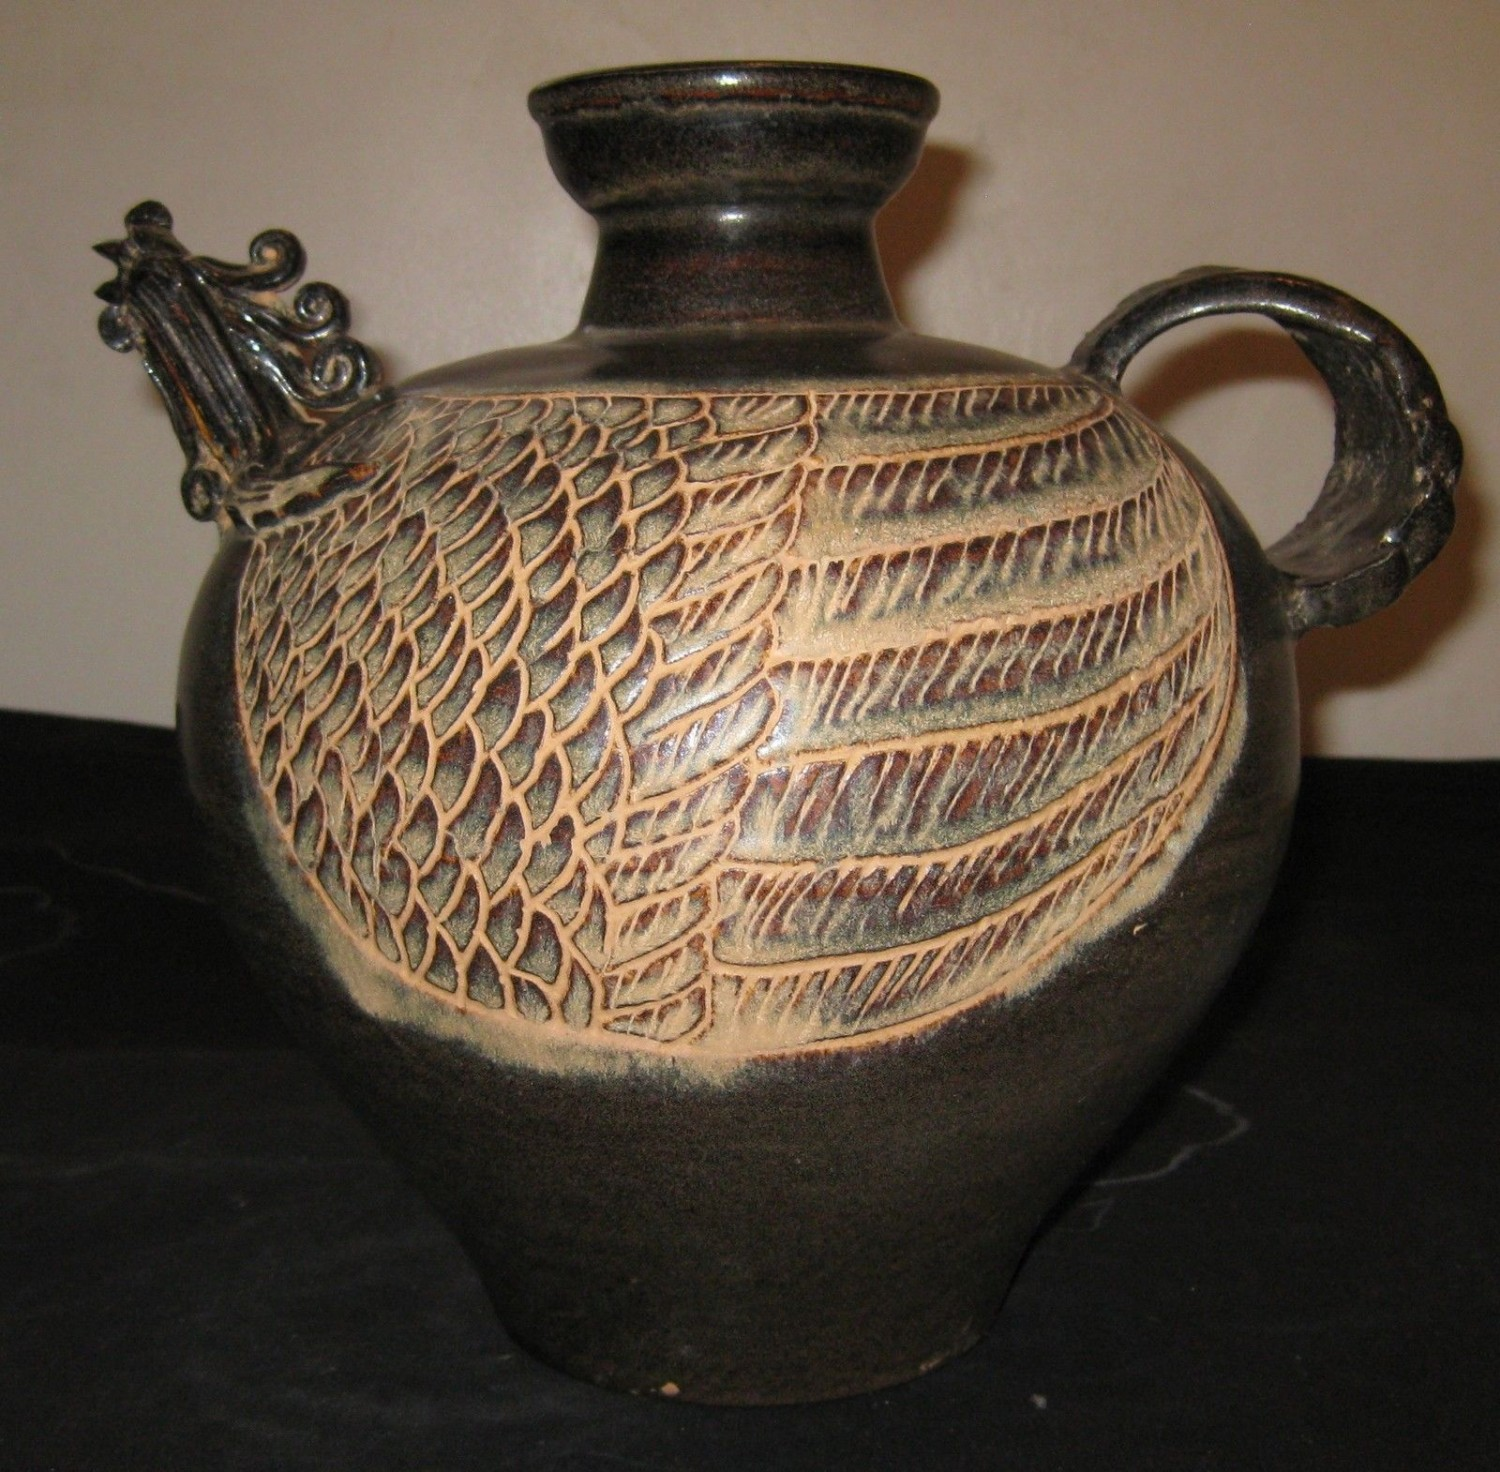 Antique Chinese Southern Song dynasty Pottery Tea Pot, 12th or 13th Century.